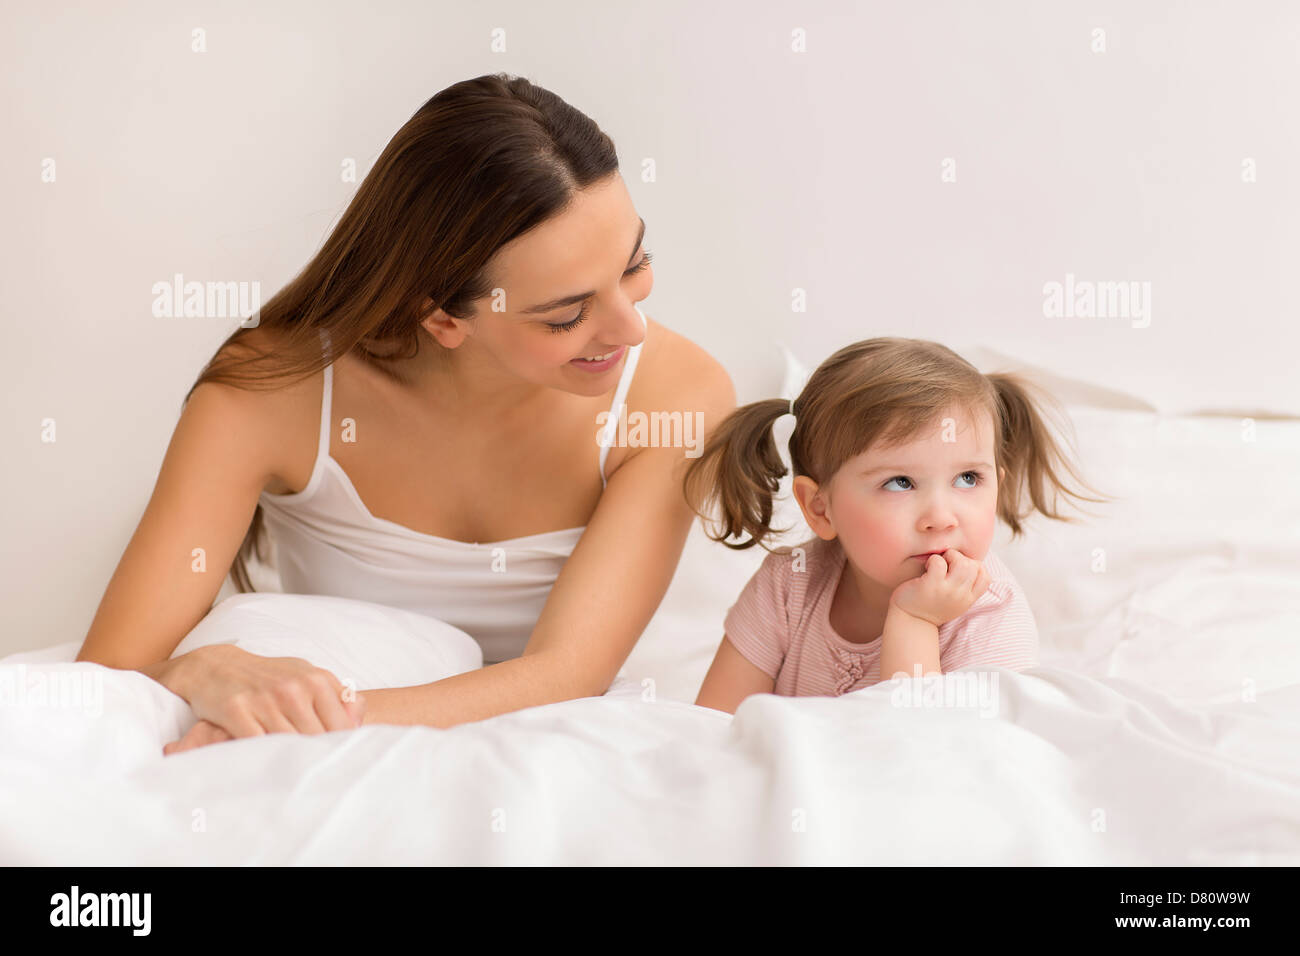 Dispute between a child and her mom in white bedroom - Stock Image